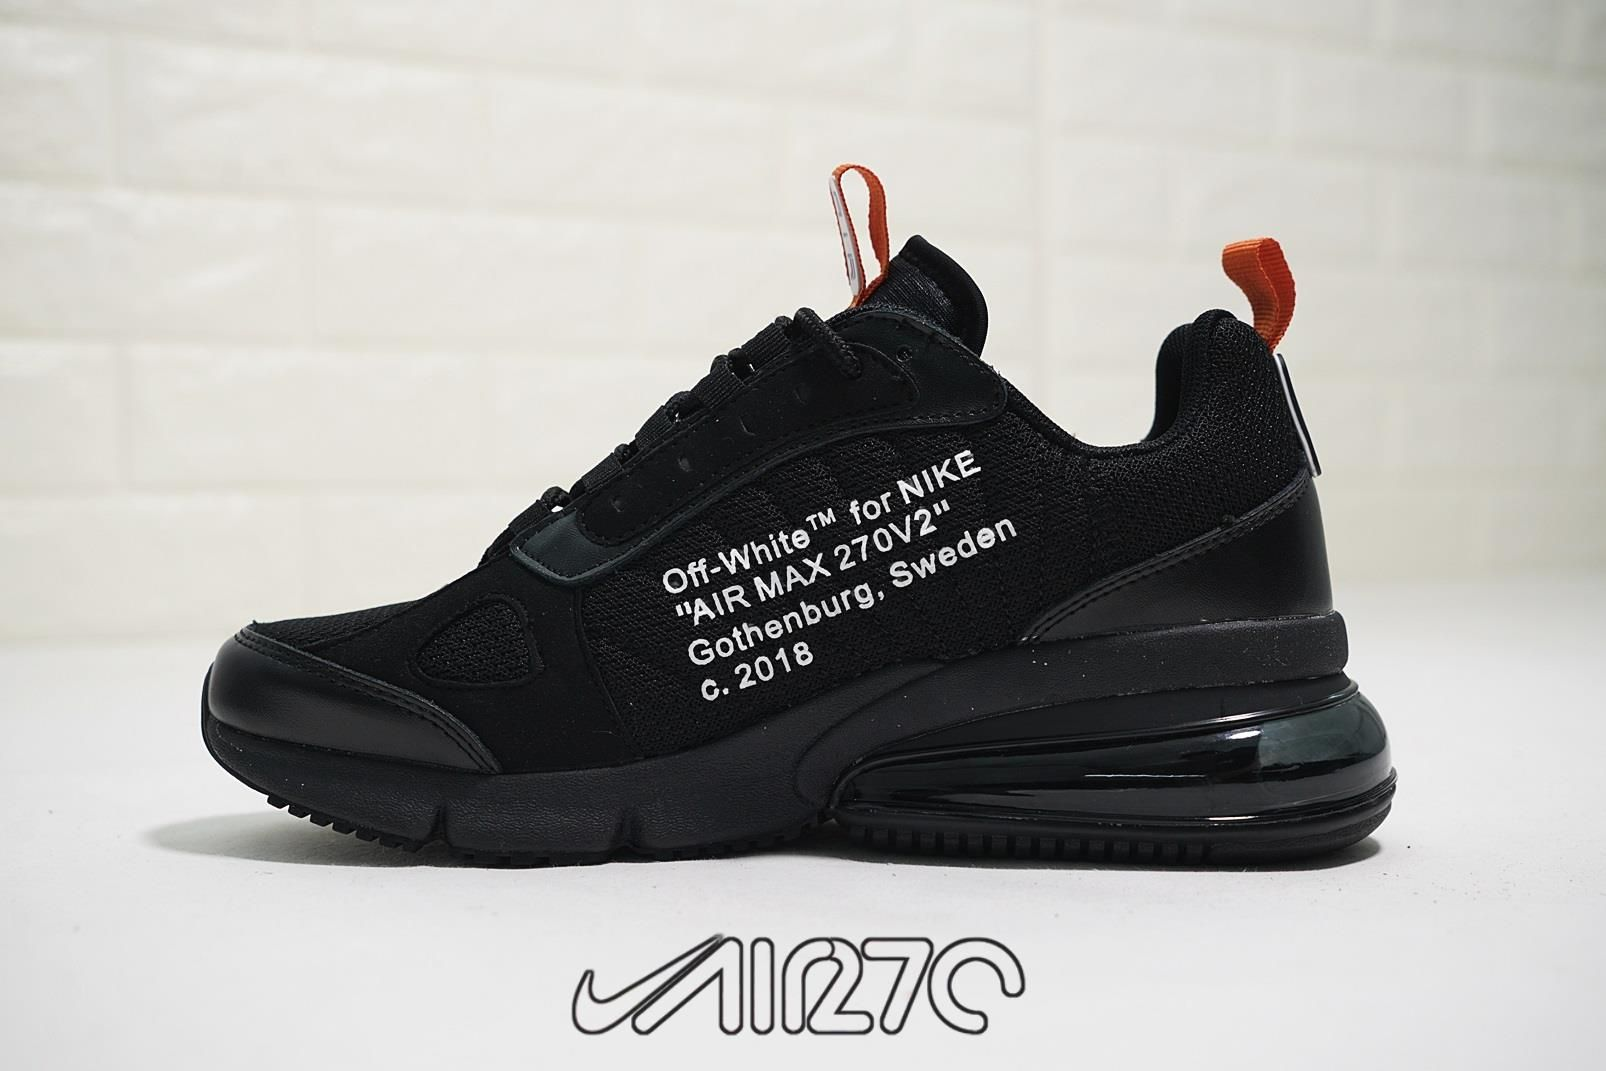 82e77d3256e3 Off-White x Nike Air Max 270 Futura Black-White in 2019 | Sneaker ...